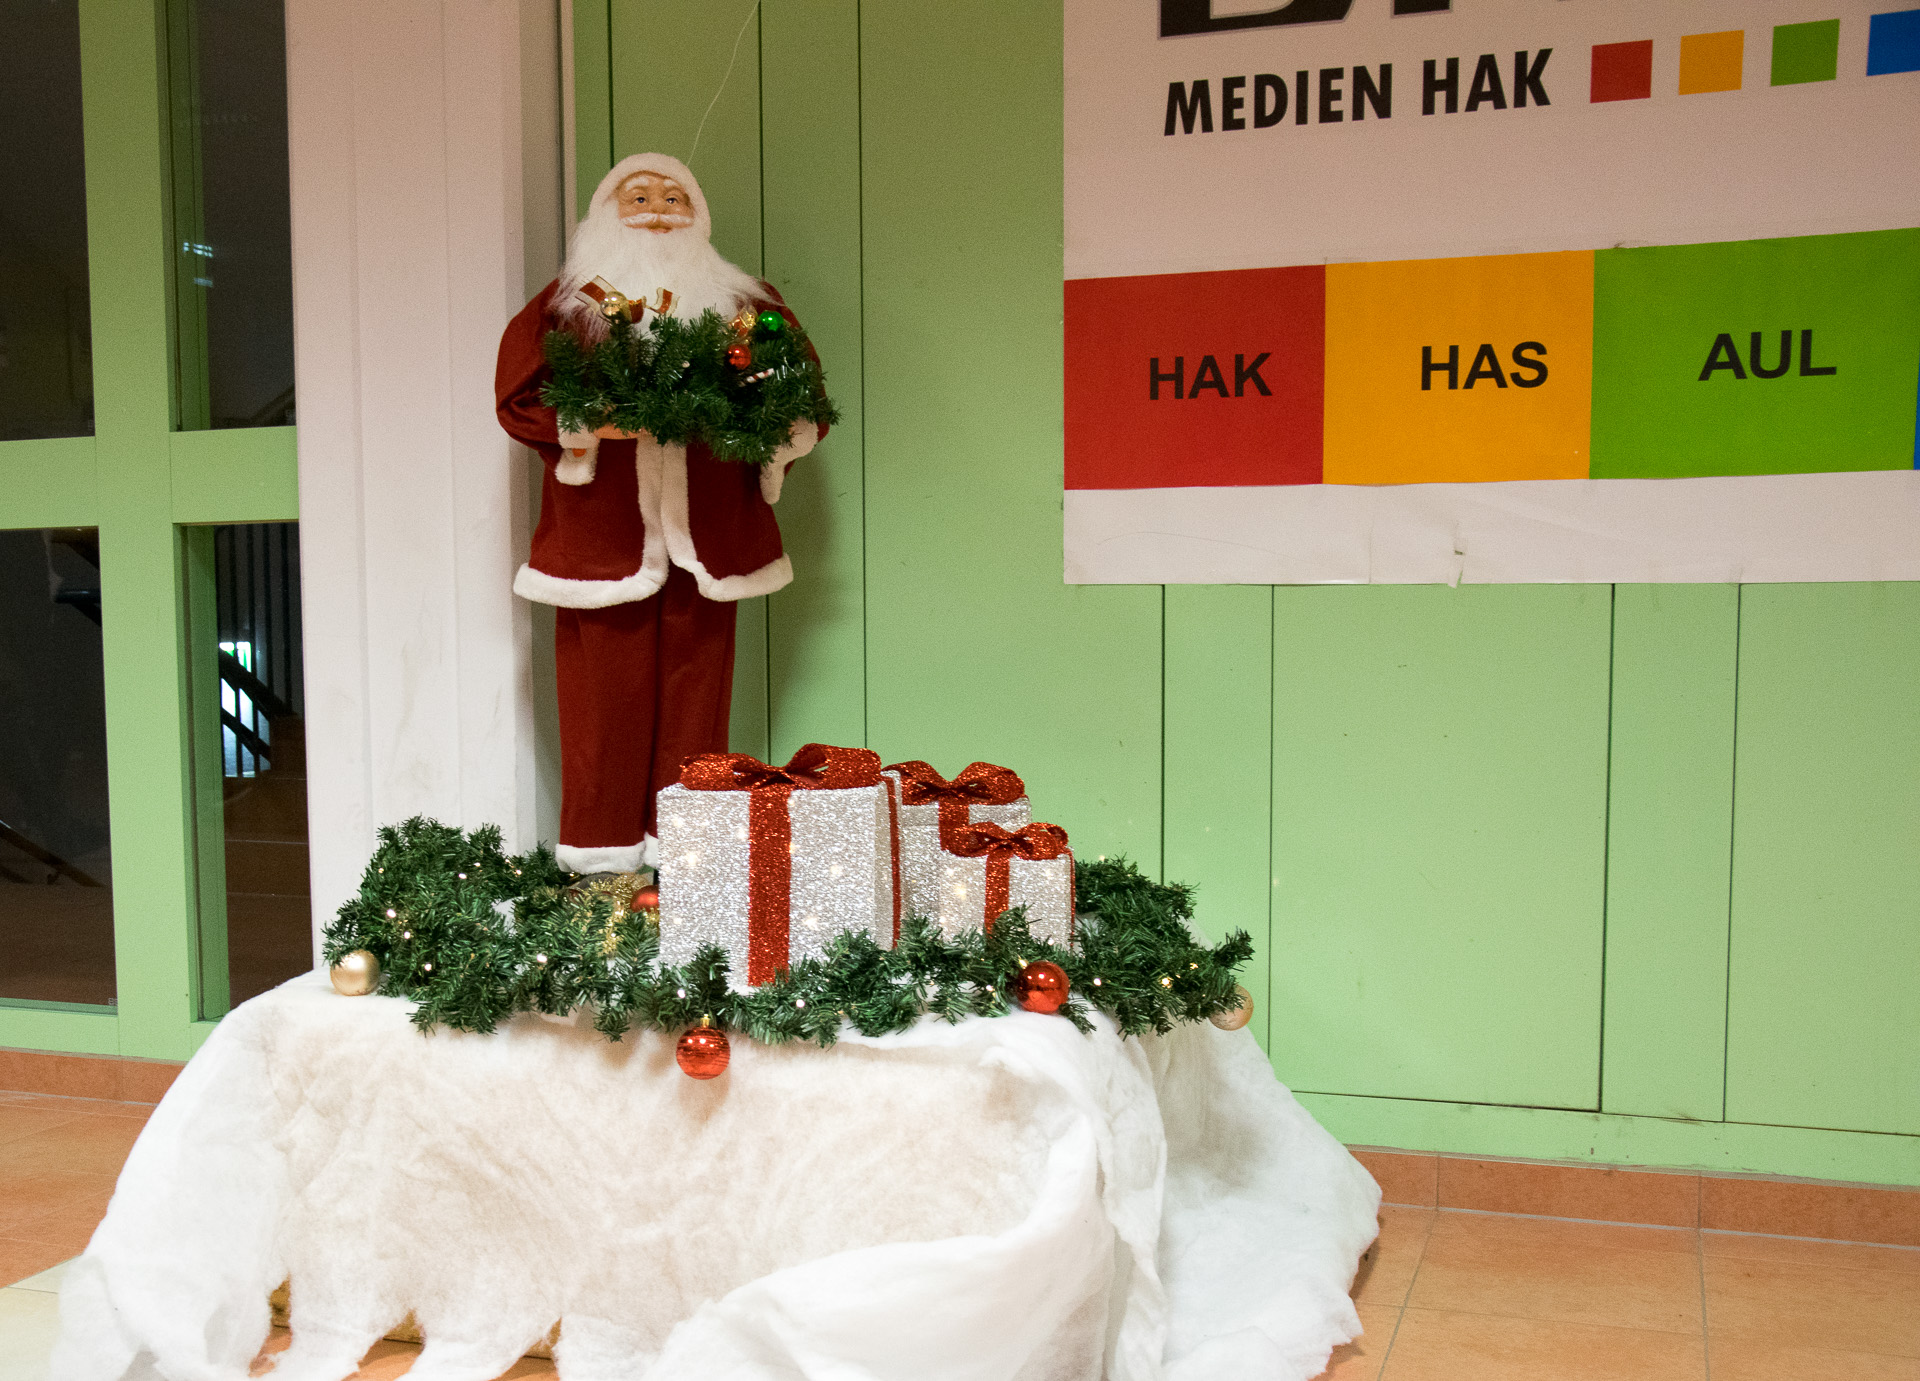 Santa Claus in der Medienhak!